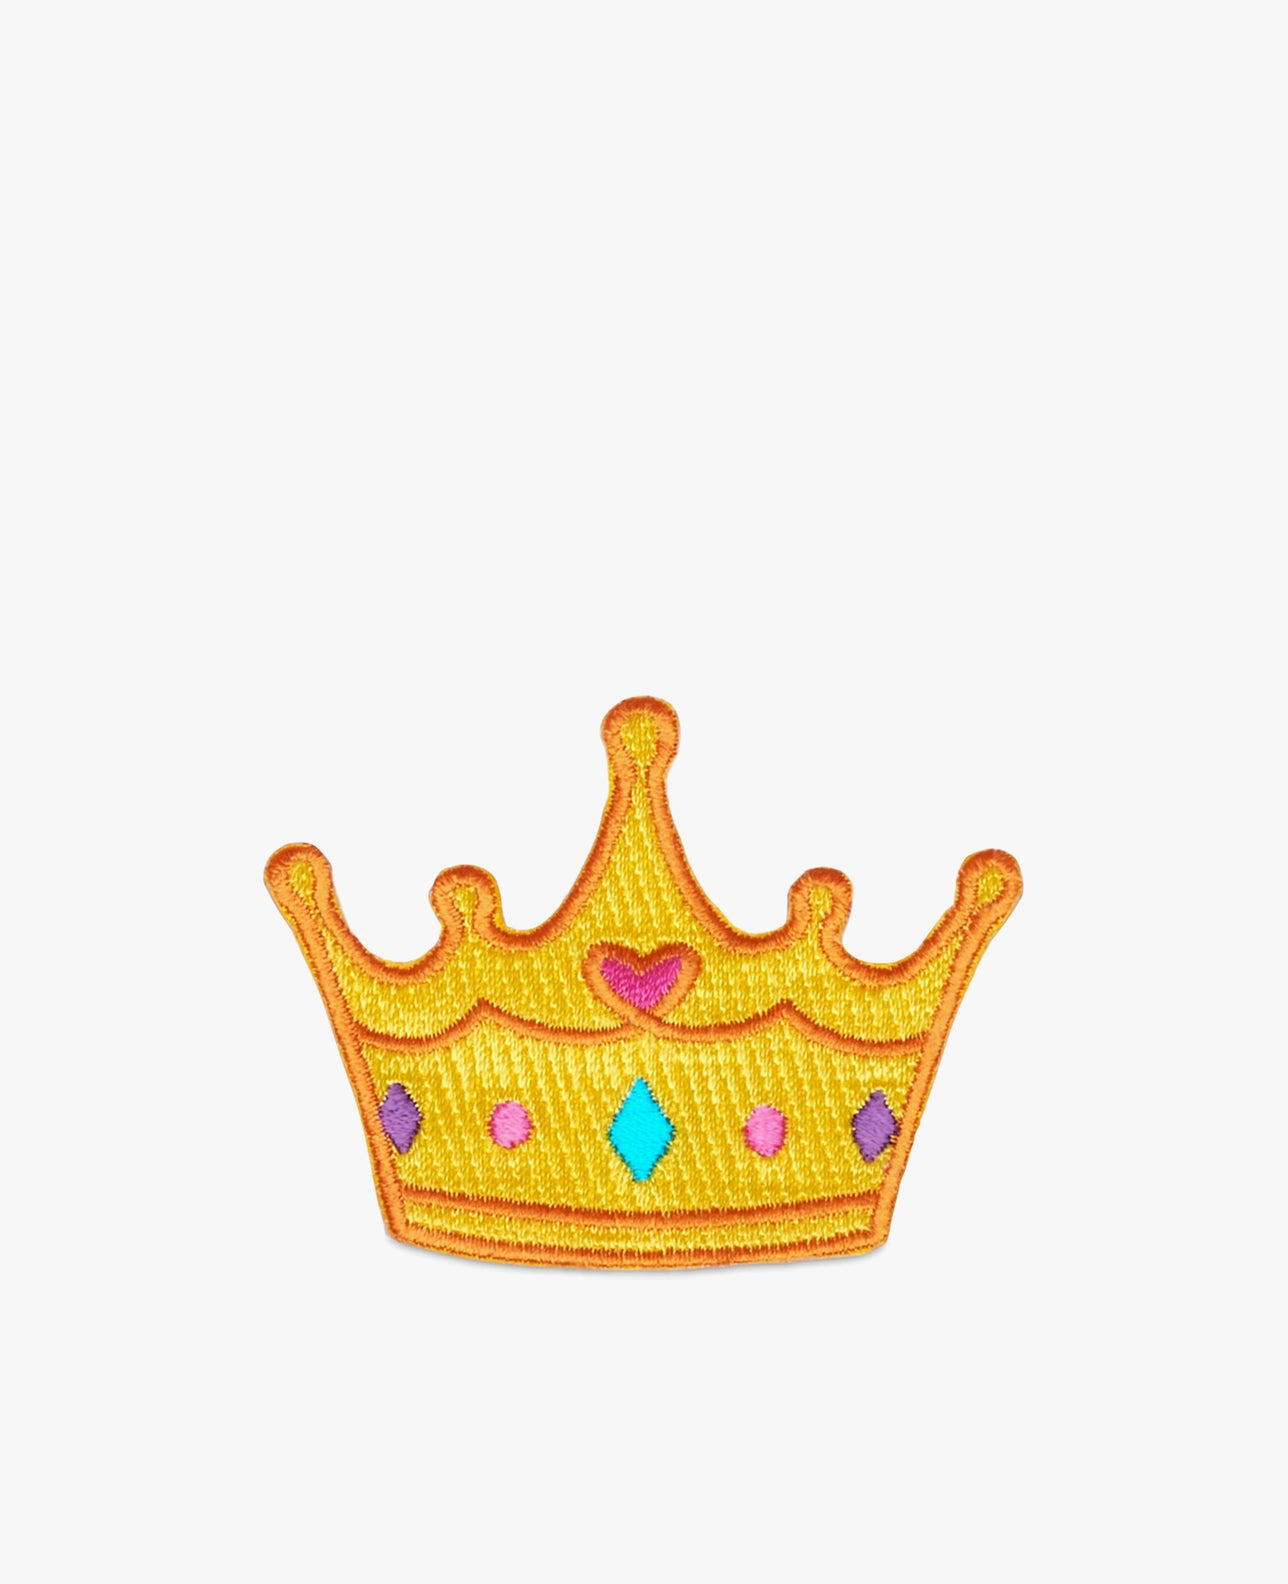 Patch: Crown